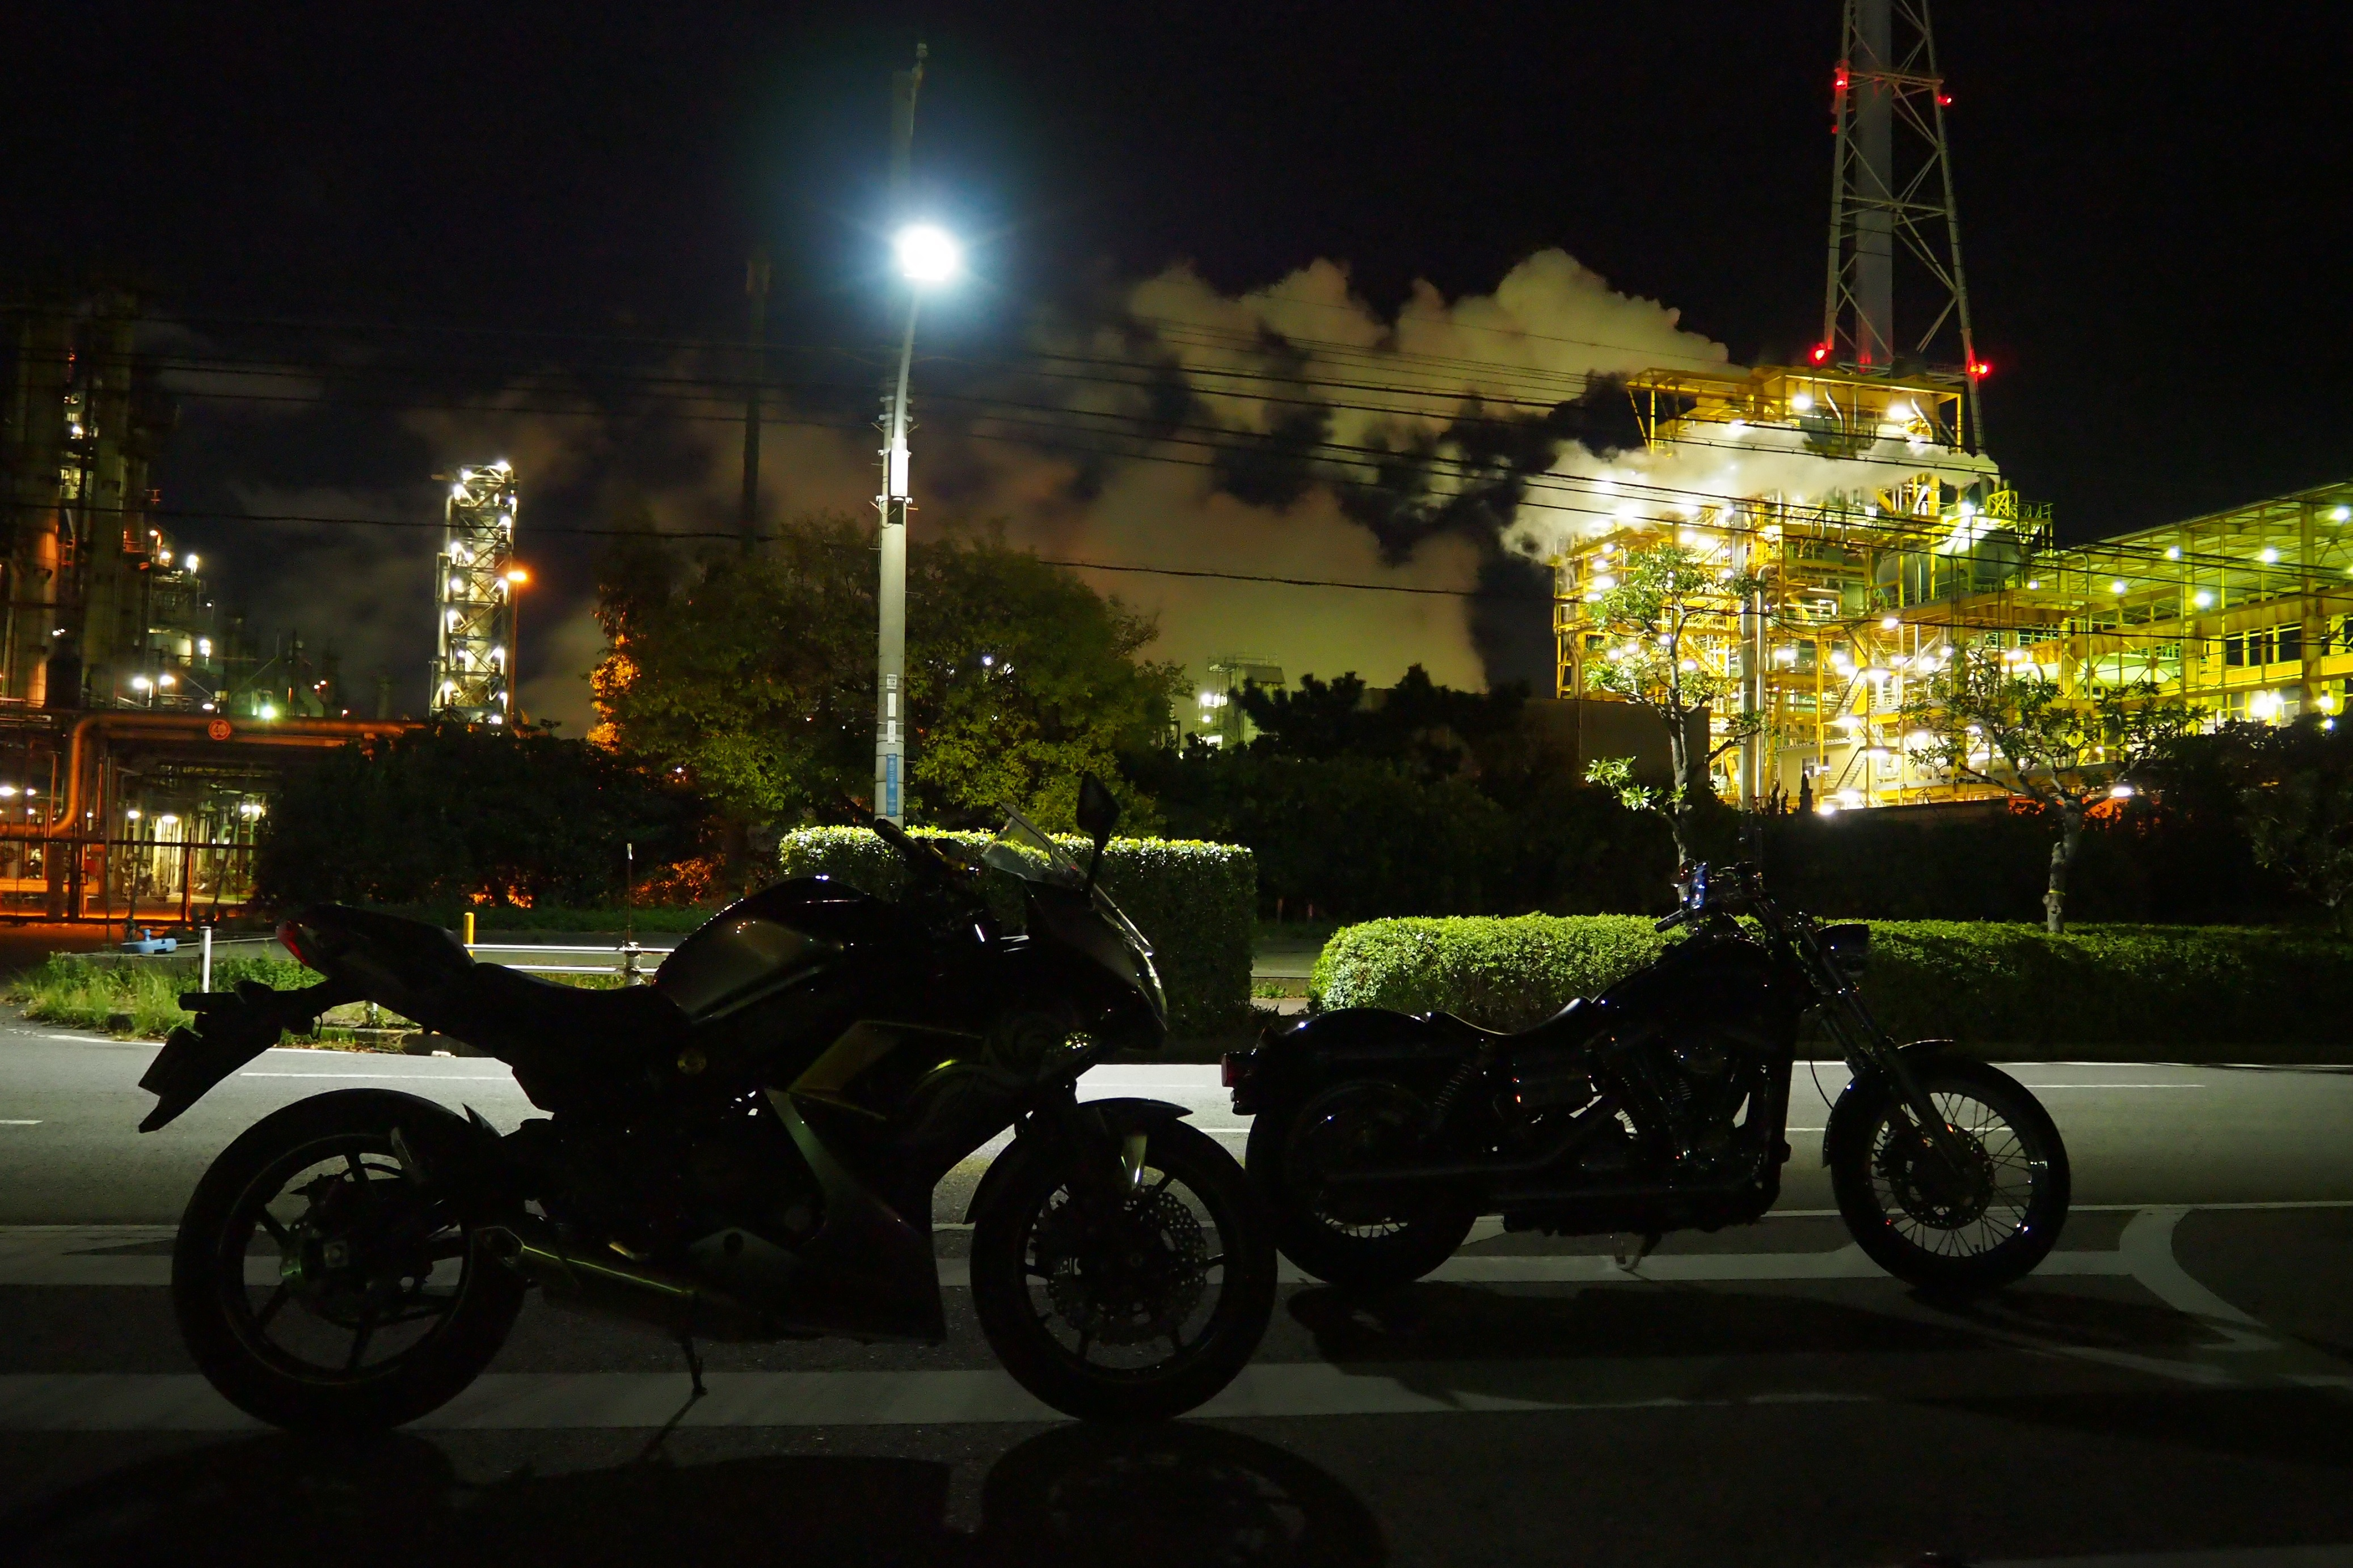 harleydavidson-motorcycle-touring-blog-osaka-nightouring-sakai-factorynightview-2.jpg